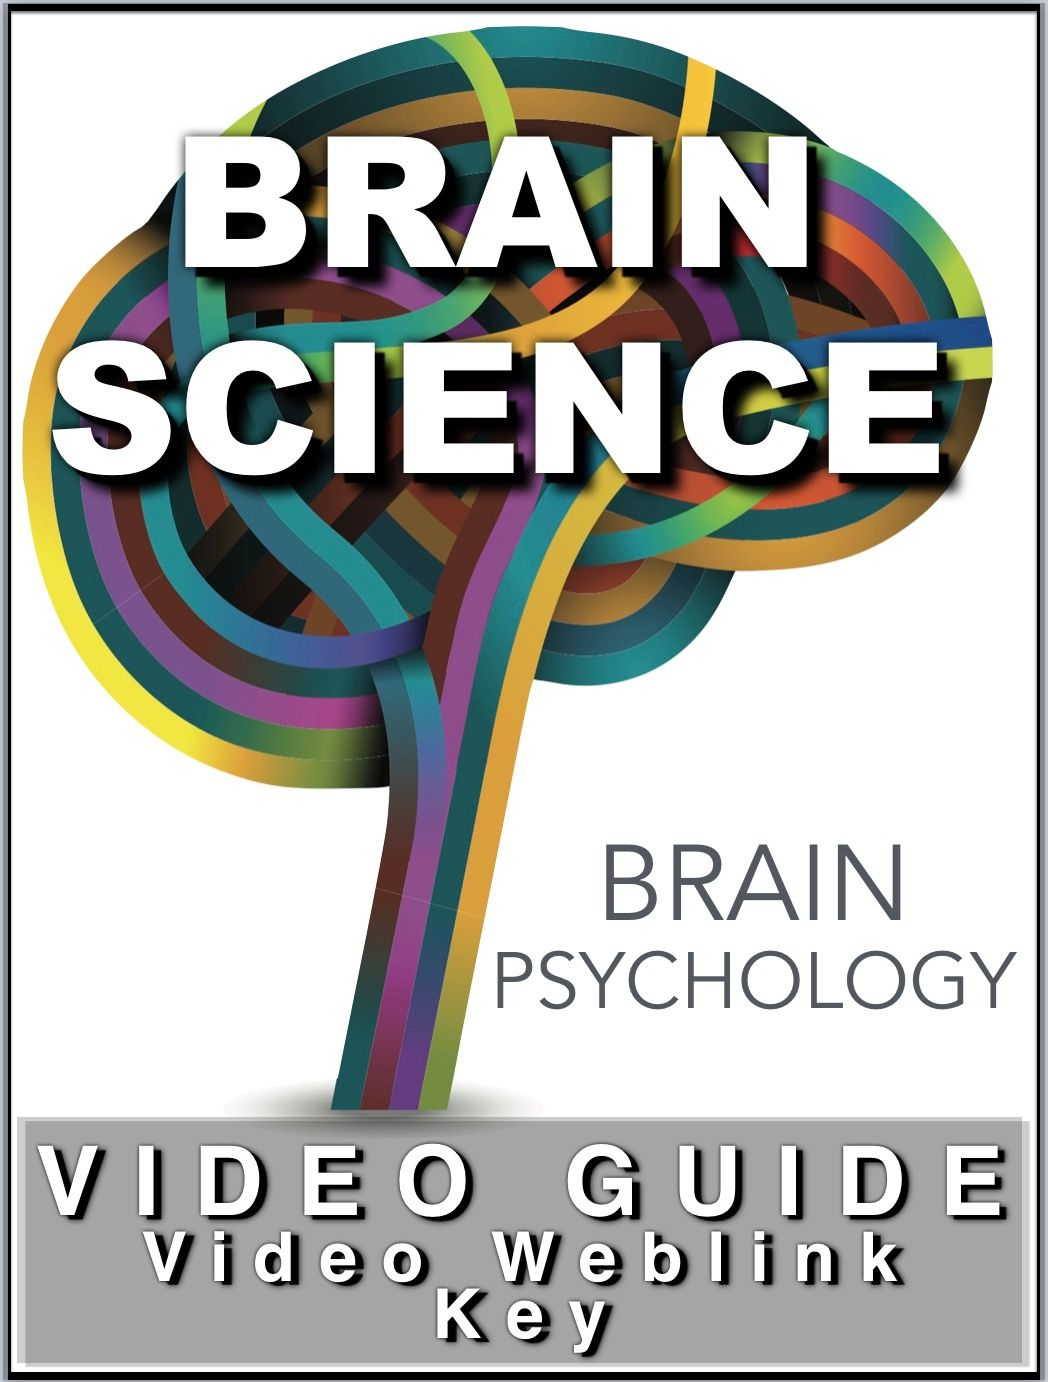 Psychology Of The Brain Video And Video Guide